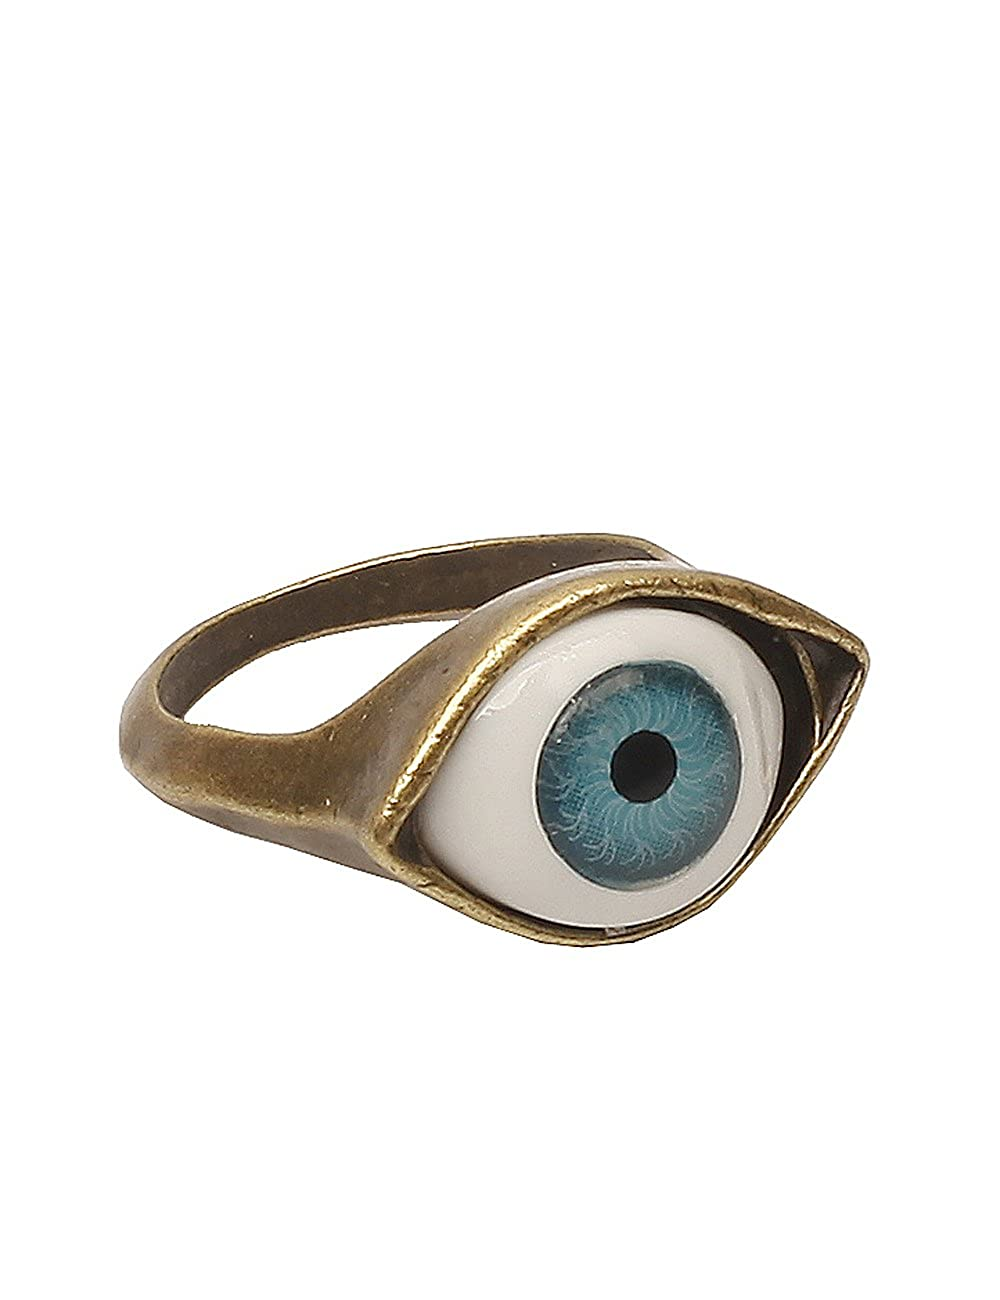 Lovers2009 Punk Style Retro Exaggeration Blue Eye Ring B00DE6OGHU_US